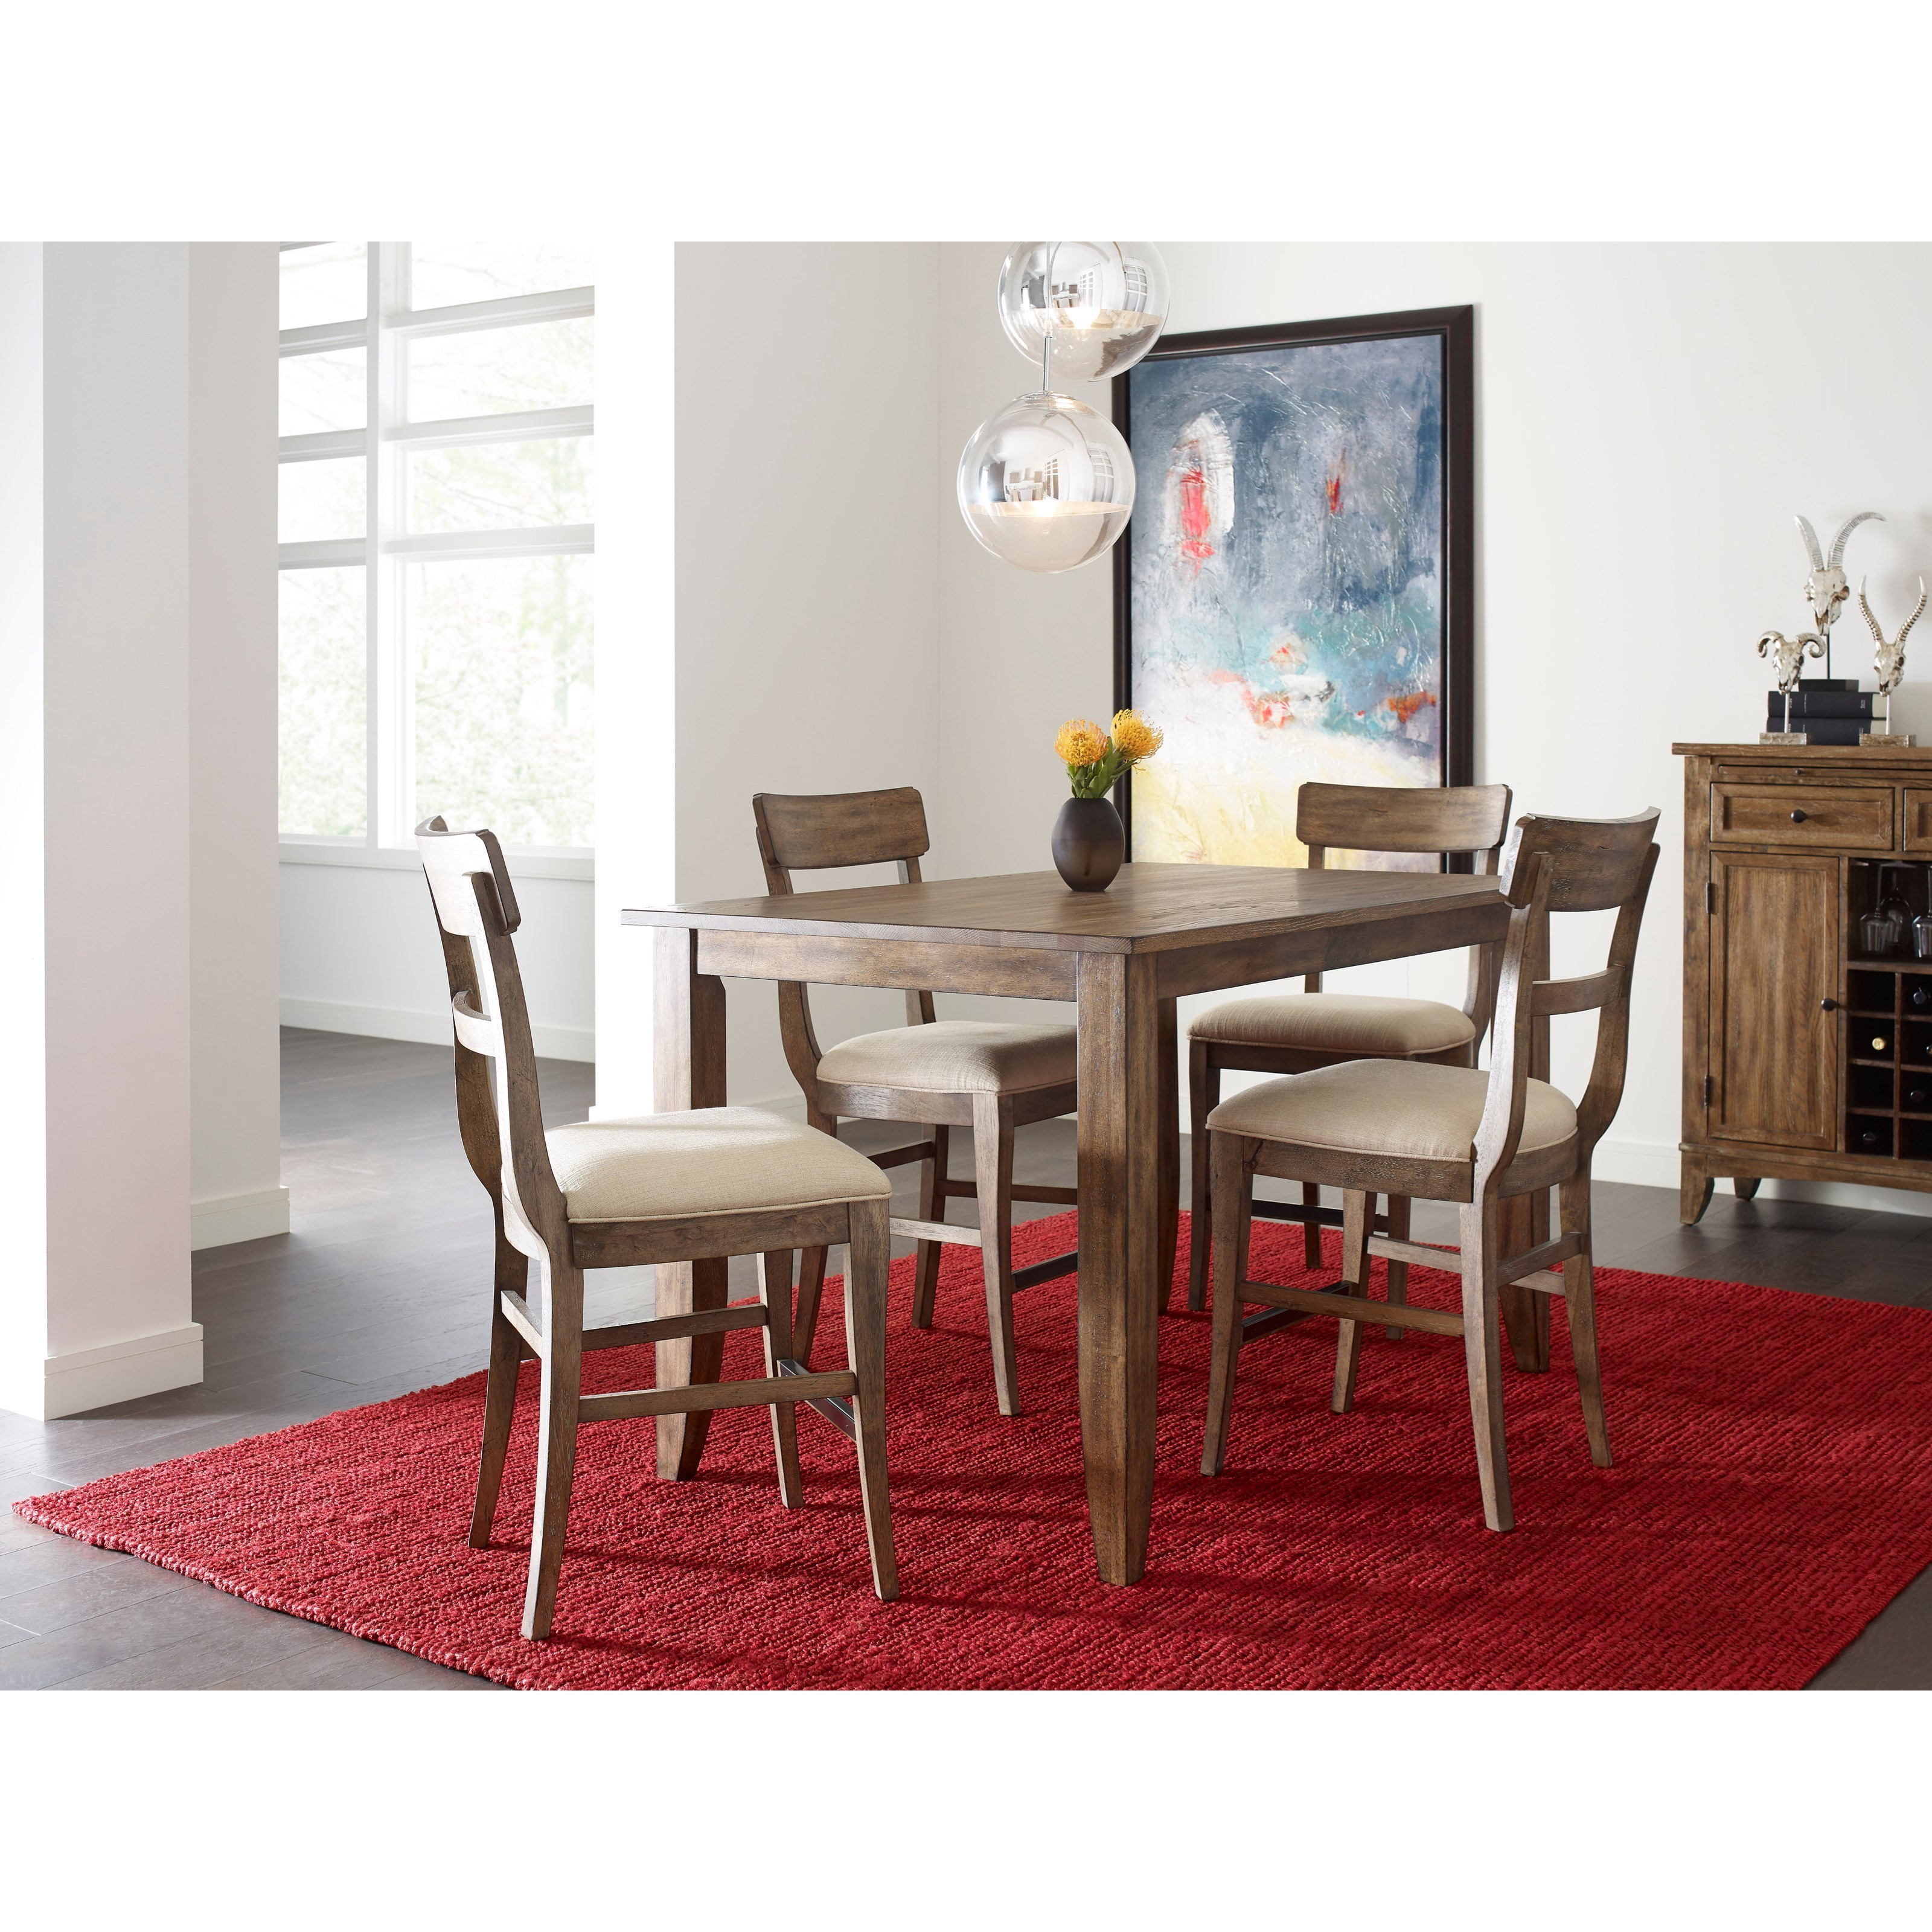 Counter Height Nook Table : Kincaid Furniture The Nook Solid Wood Rectangular Counter Height Table ...